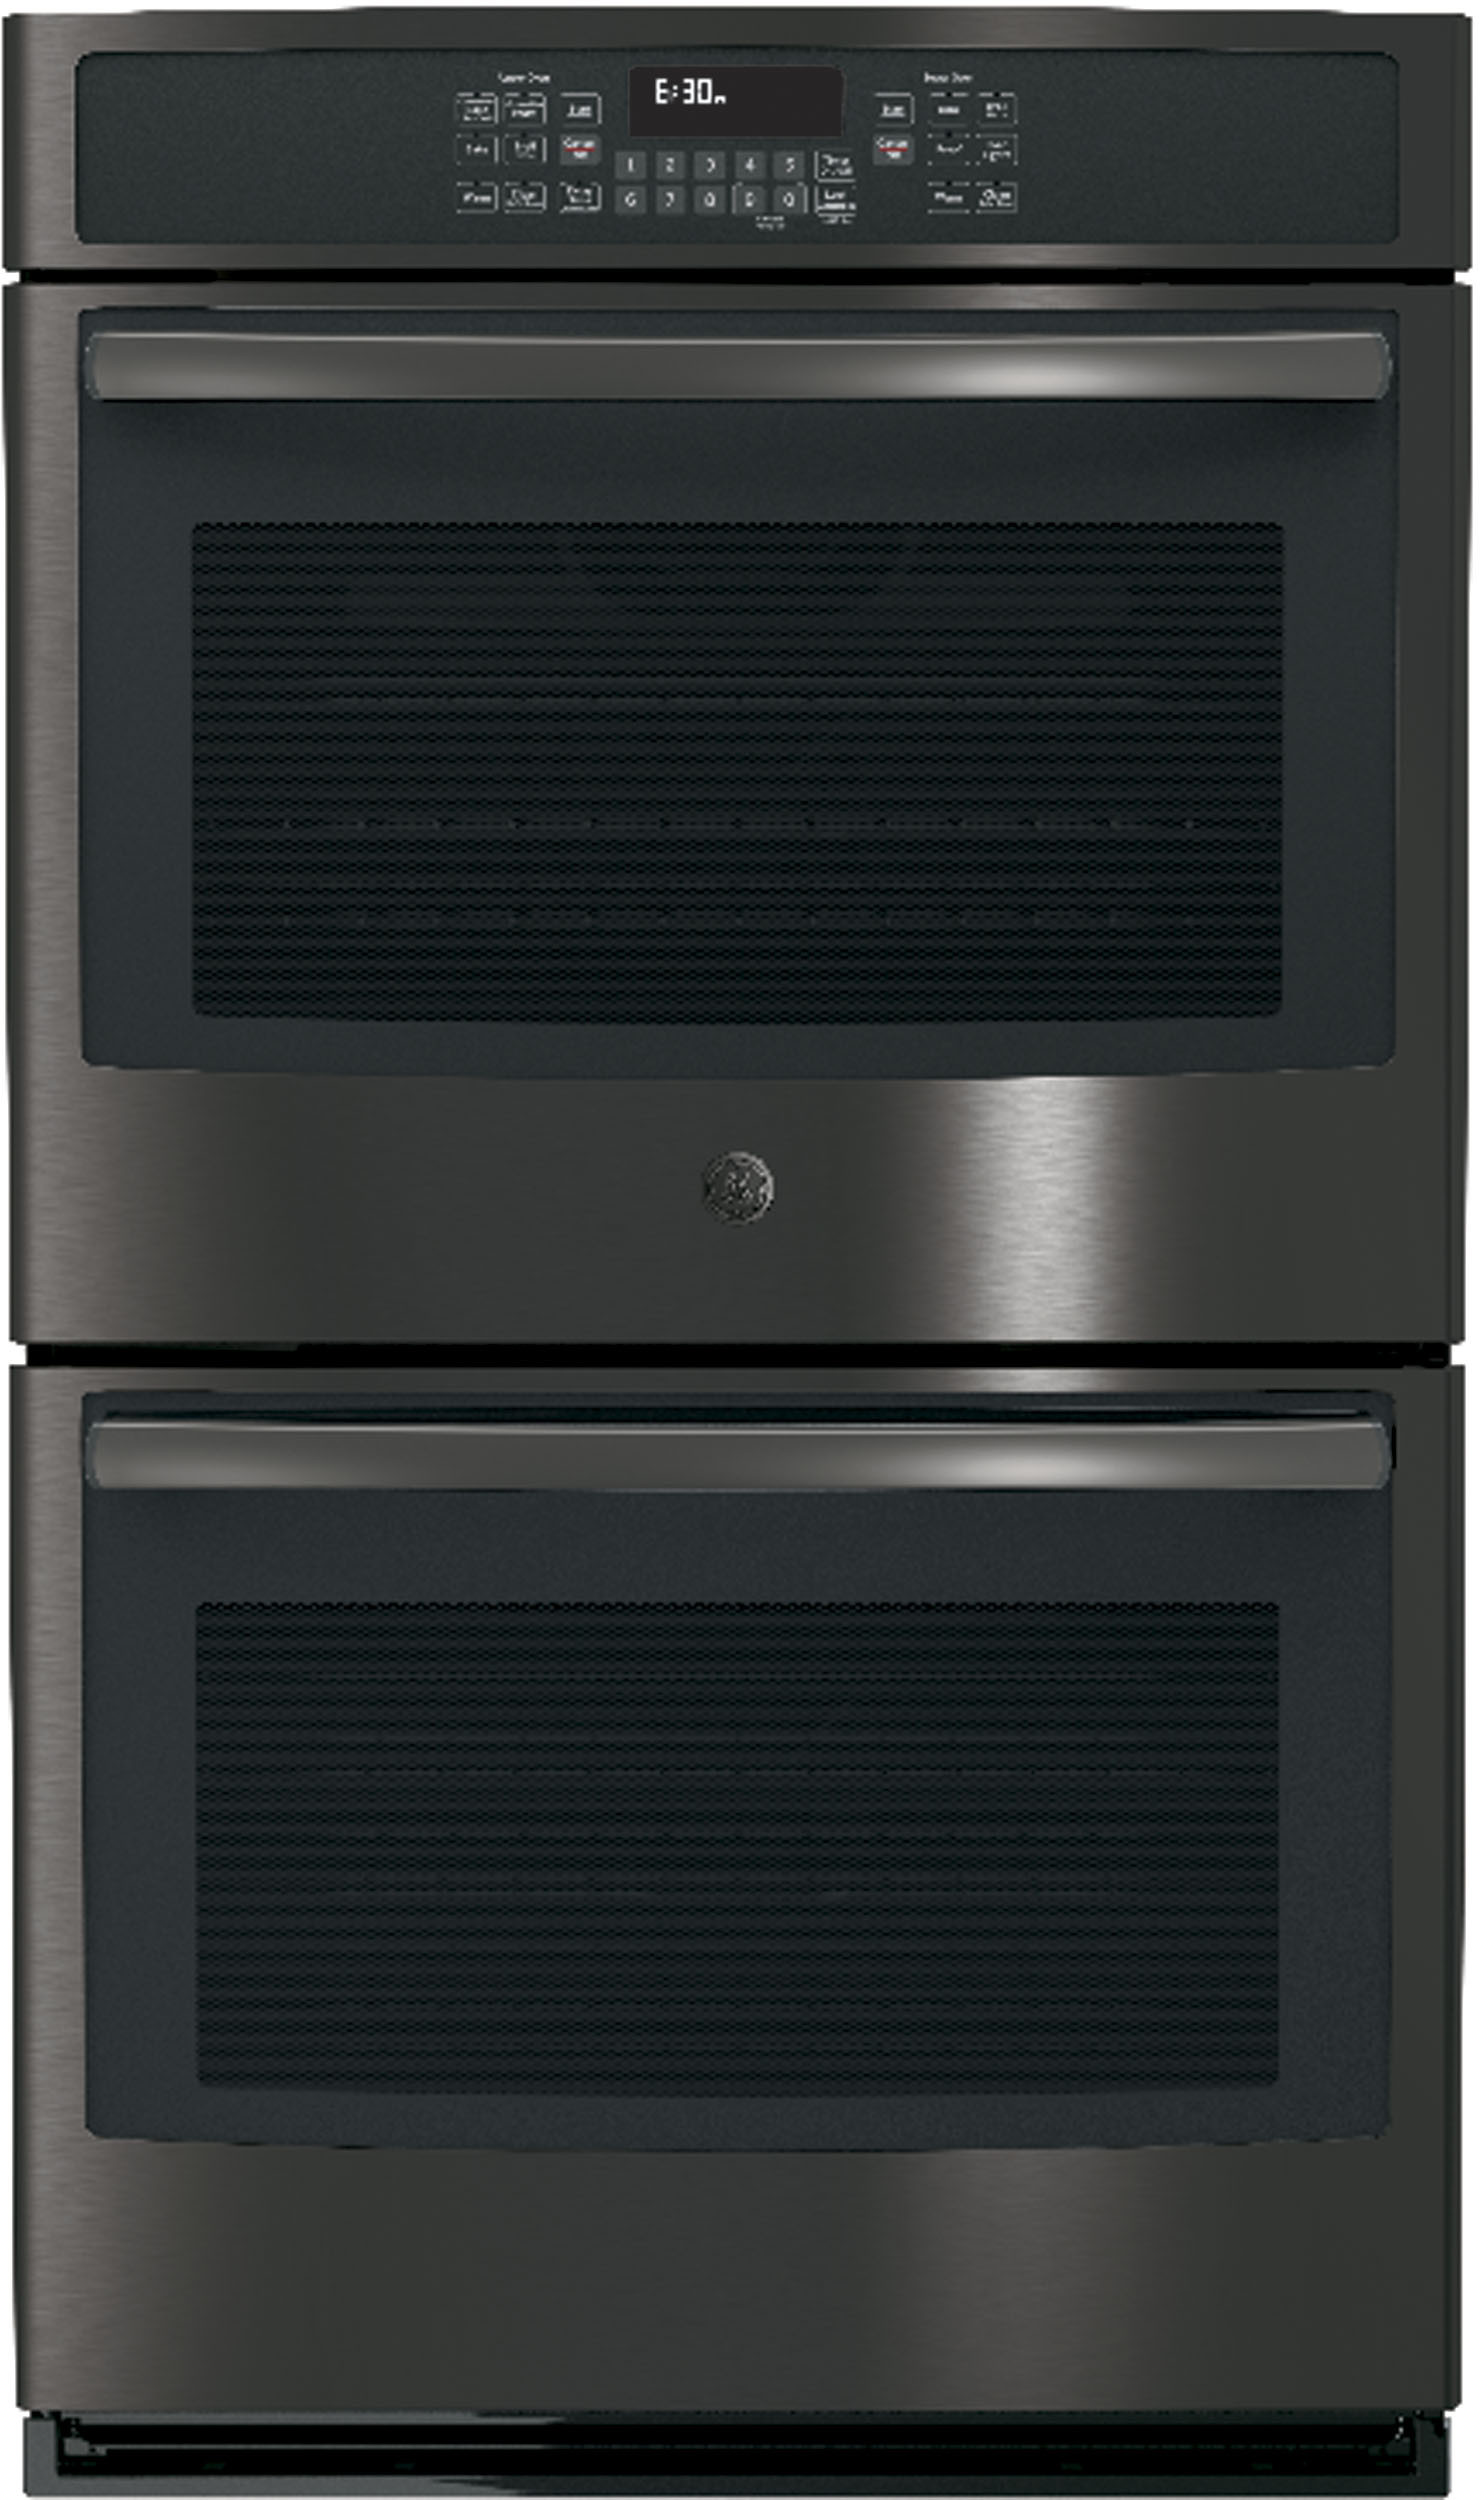 Ge Jt5500blts 30 Inch Electric Double Wall Oven With True